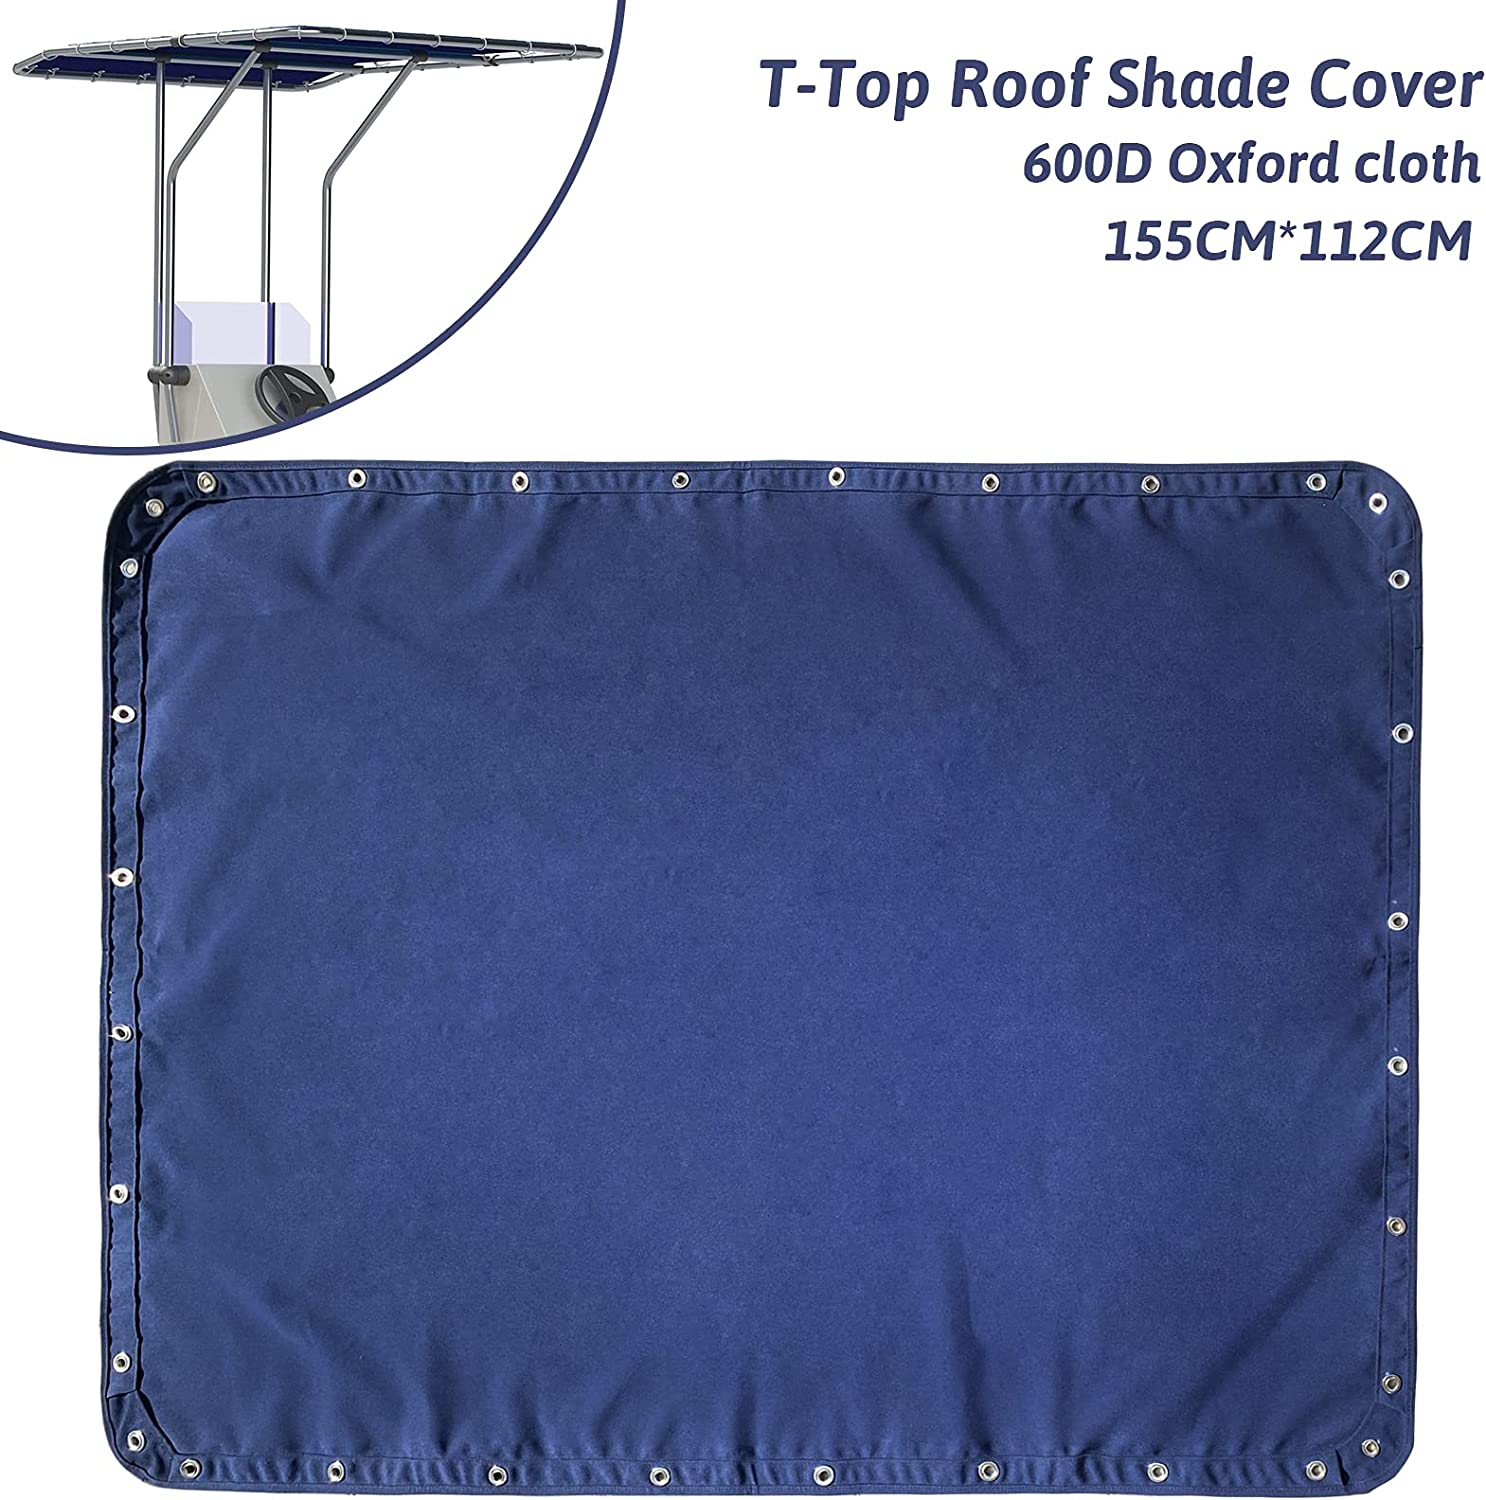 TeBaisea Boat T-Top Shade Cover Boat Center Console Shade T Top